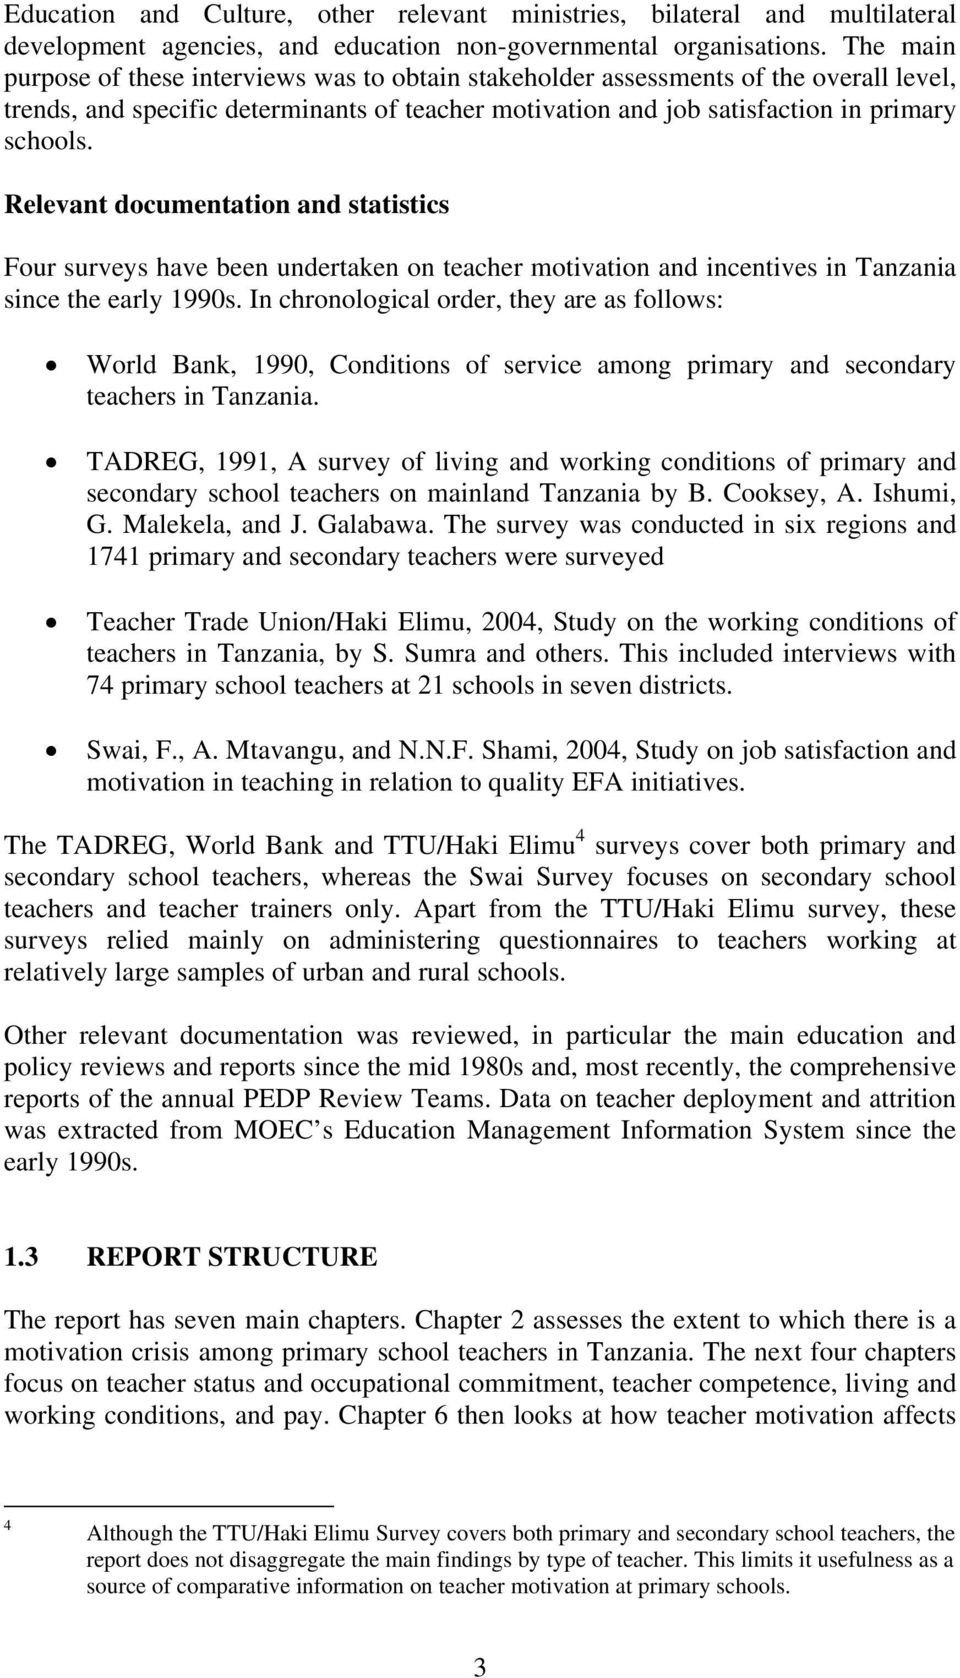 Relevant documentation and statistics Four surveys have been undertaken on teacher motivation and incentives in Tanzania since the early 1990s.